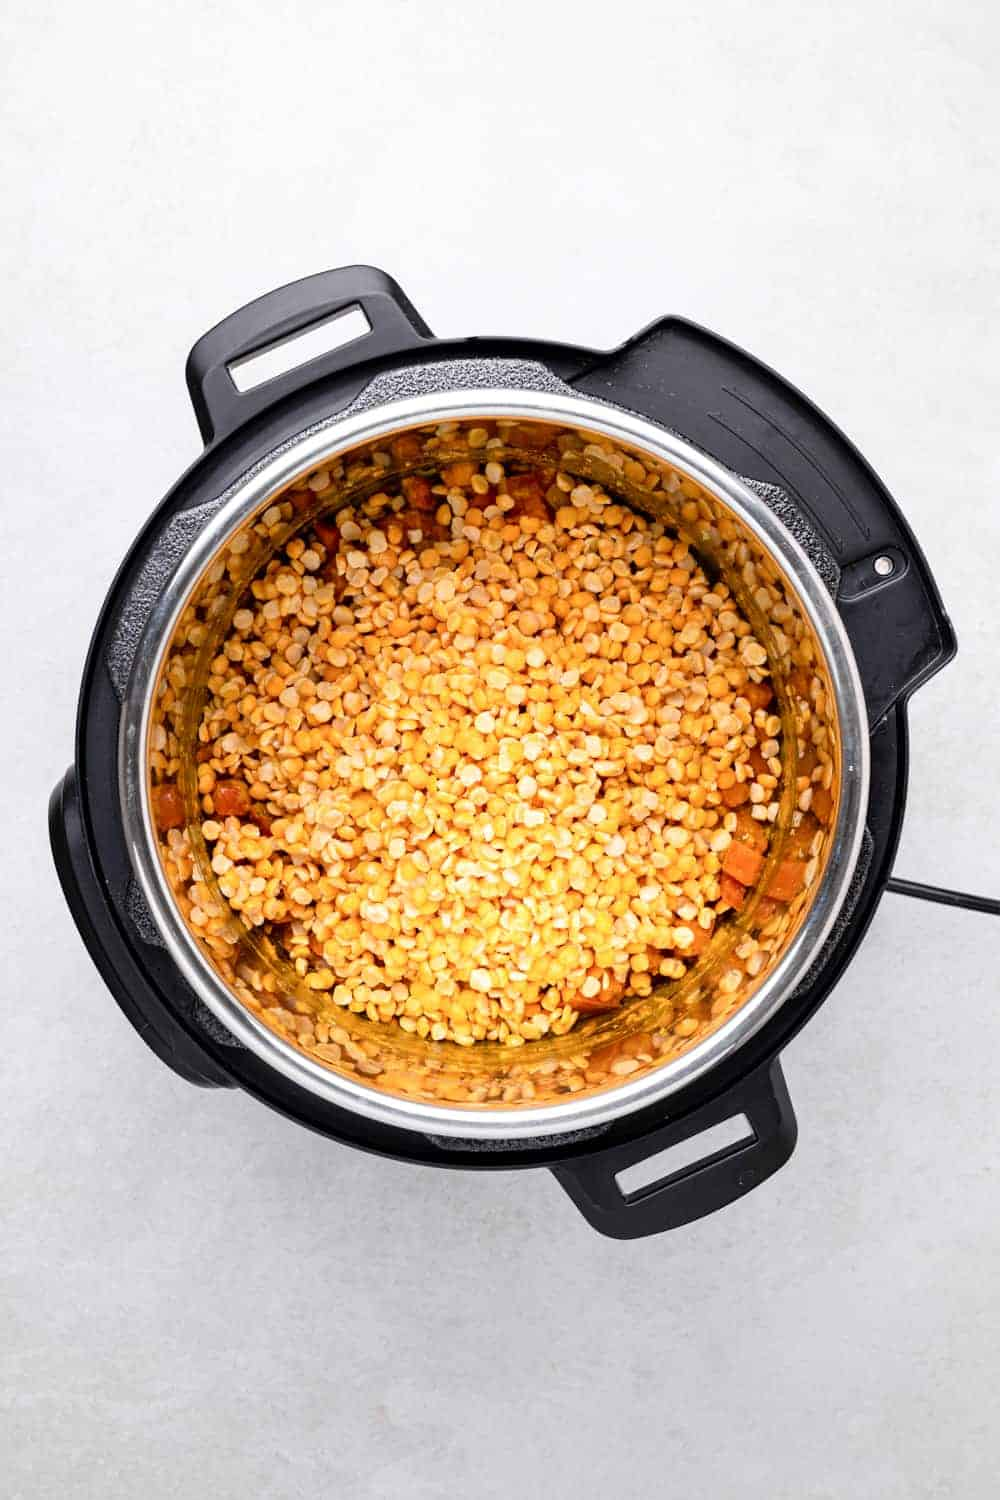 split yellow pigeon peas added to Instant Pot